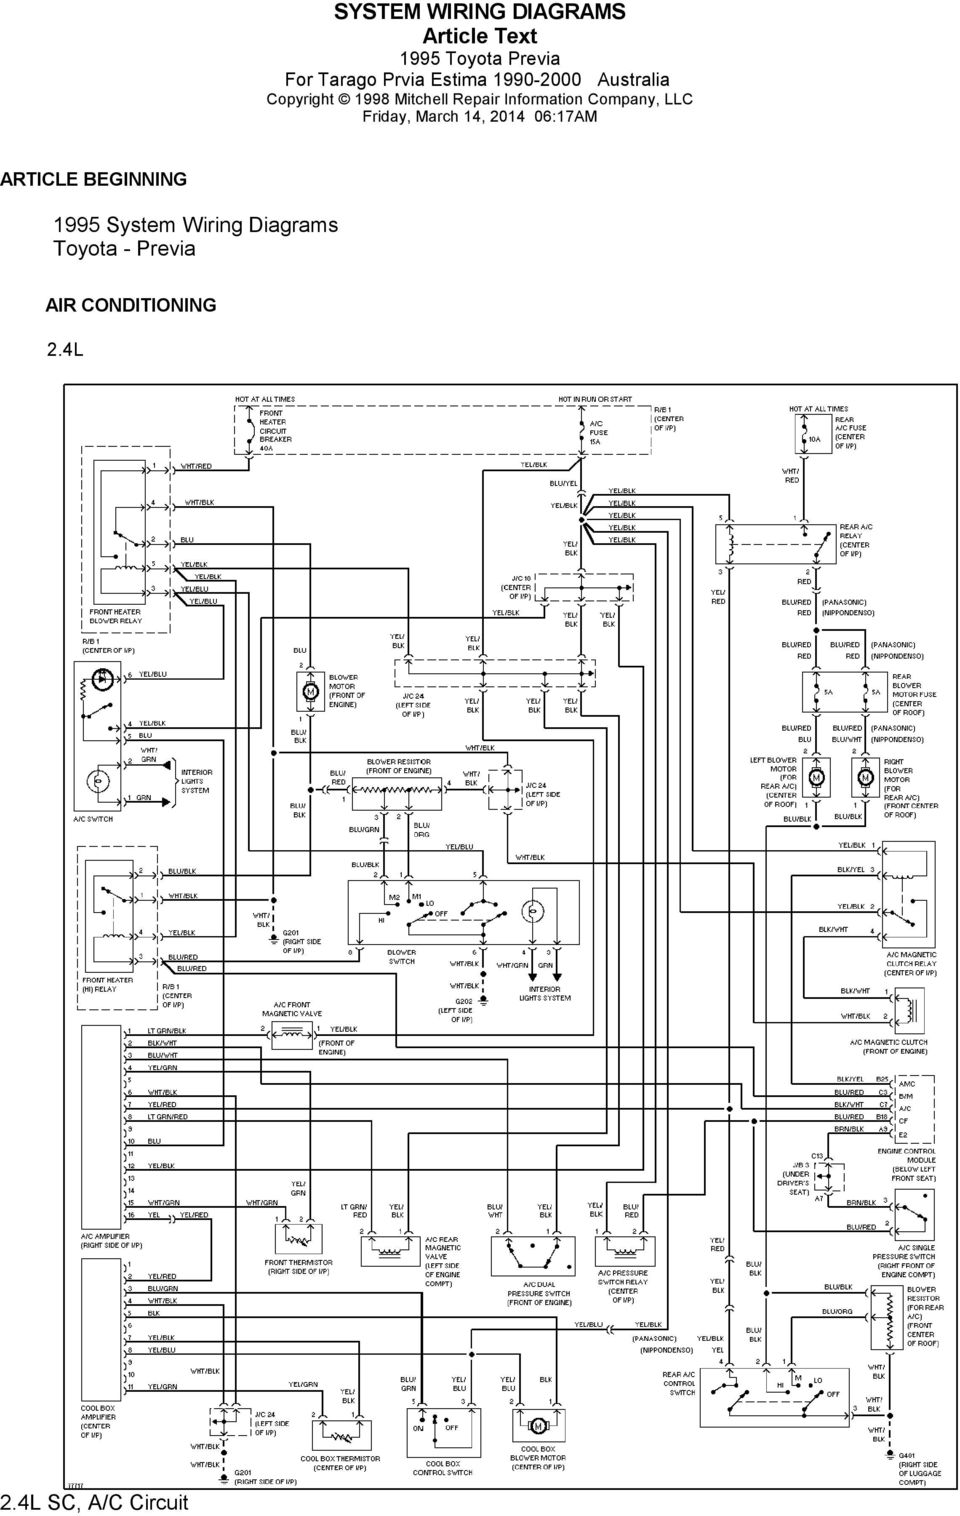 2002 toyota headlight plug wiring diagram 1995 system wiring diagrams toyota - previa. 2.4l sc, a/c ... #5